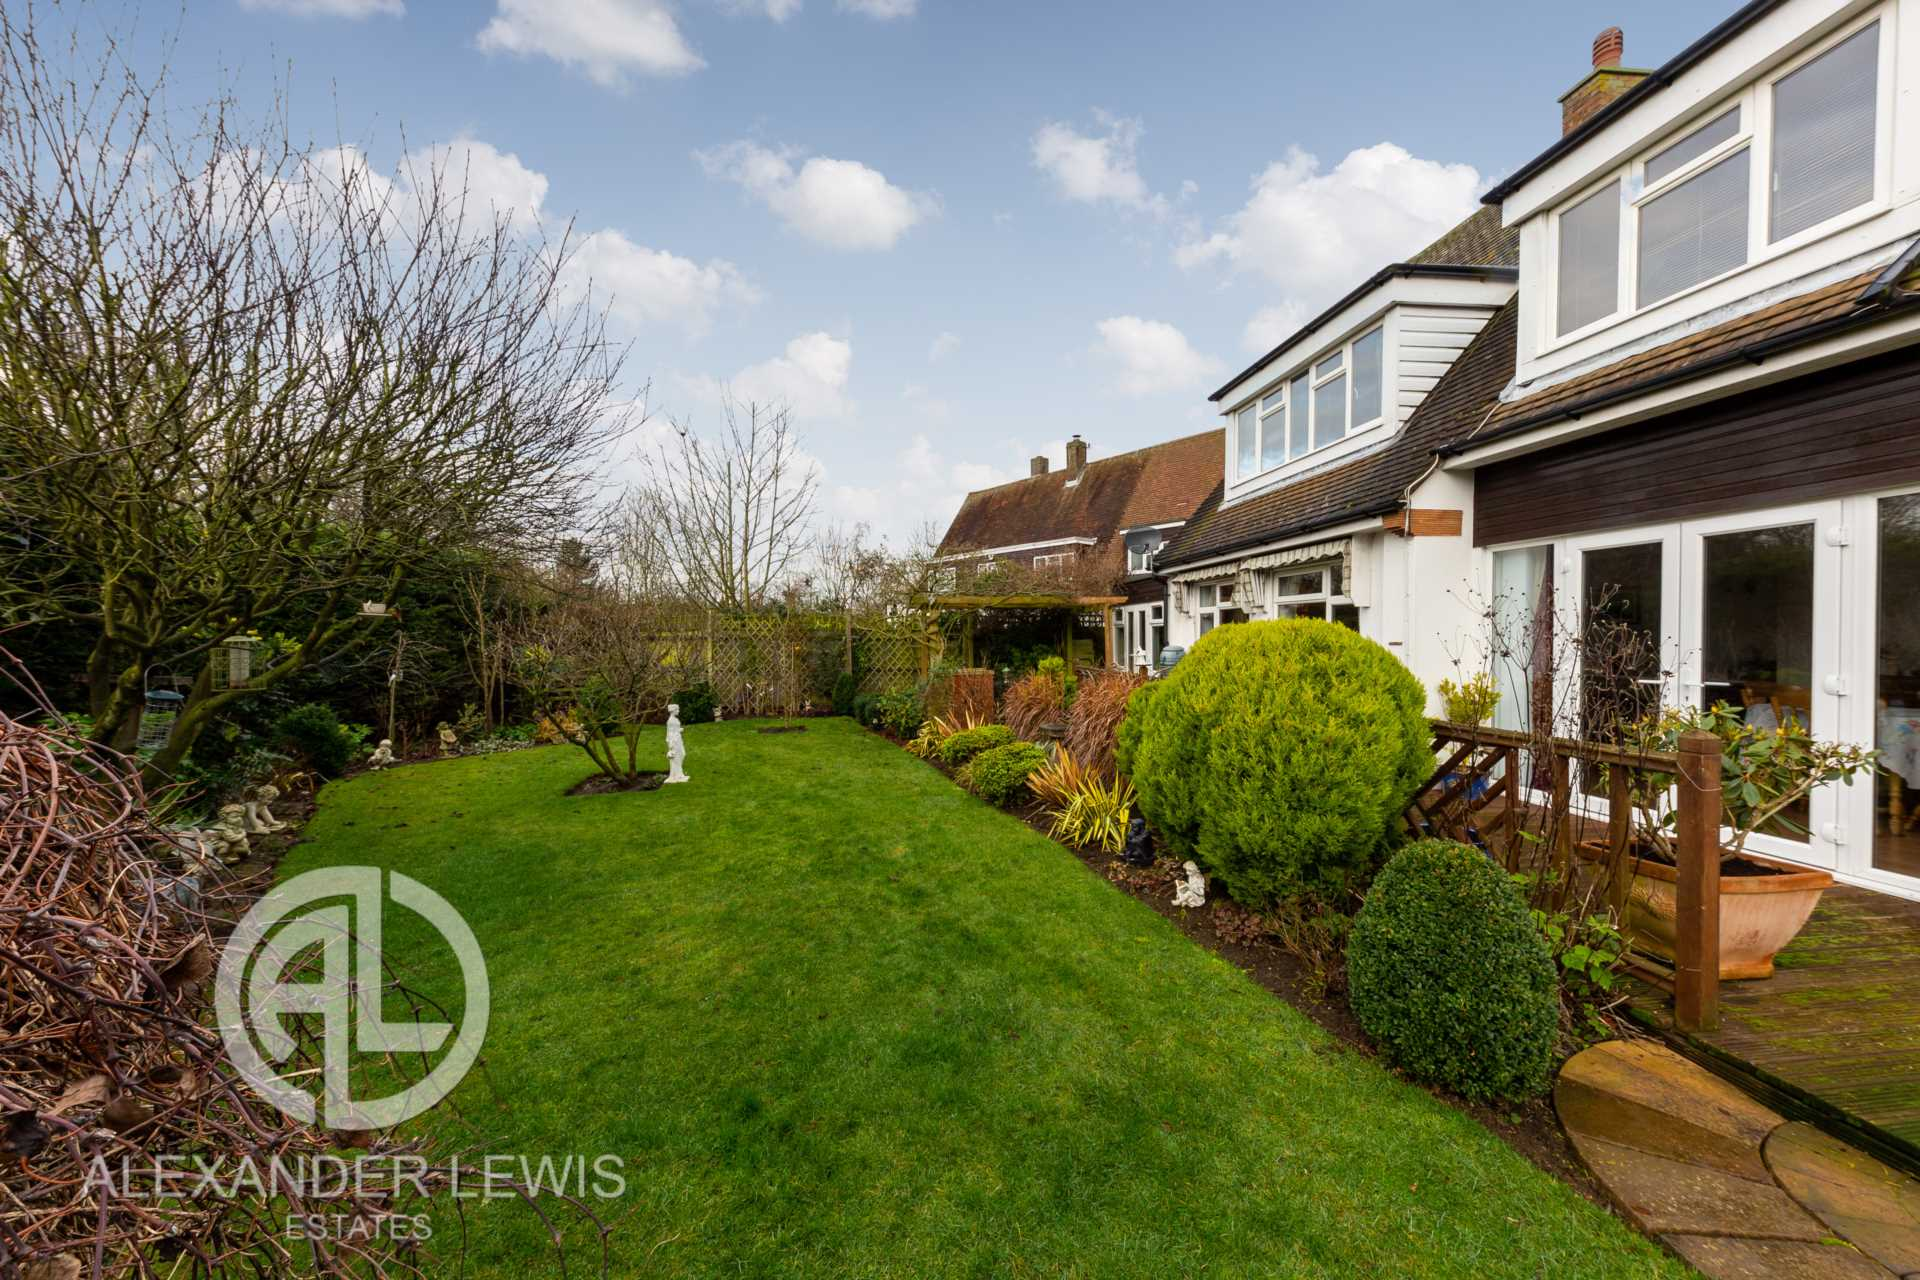 Croft Lane, Letchworth Garden City, SG6 1AP, Image 15